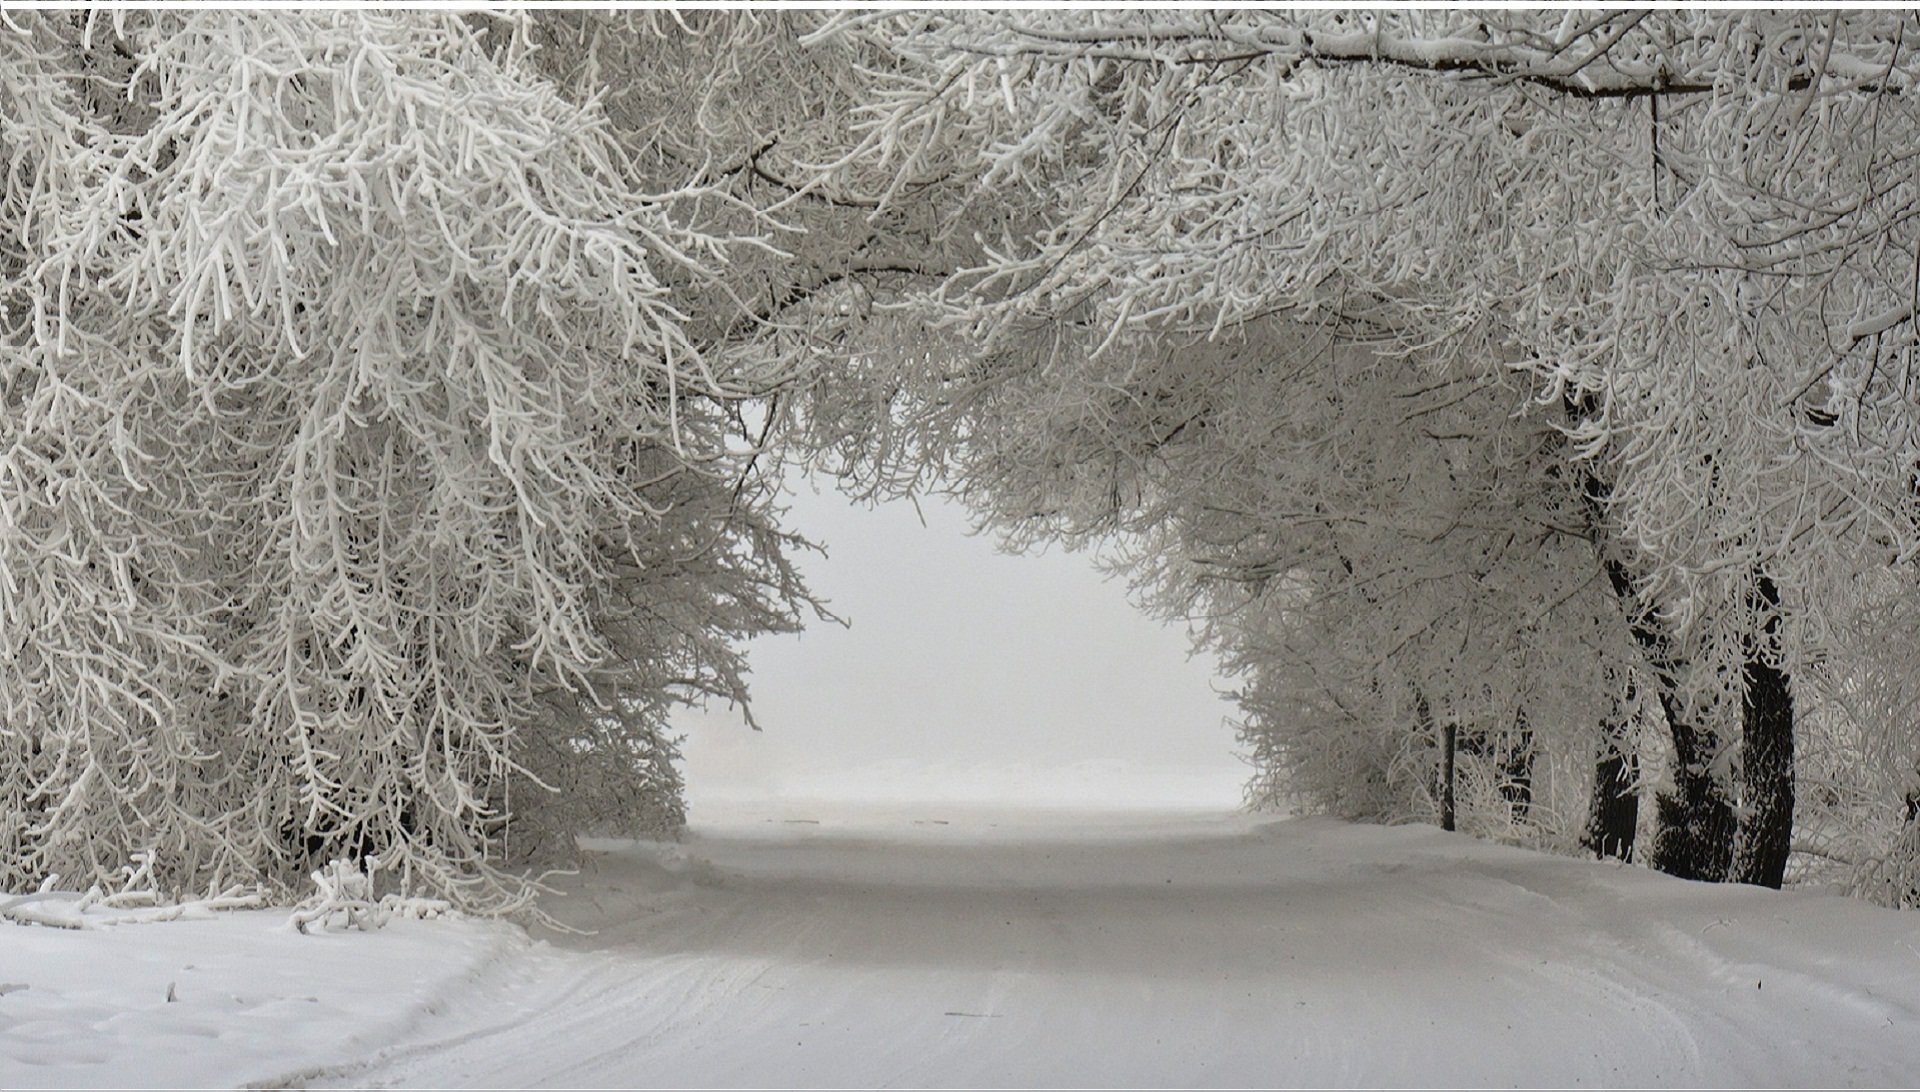 winter hd images download